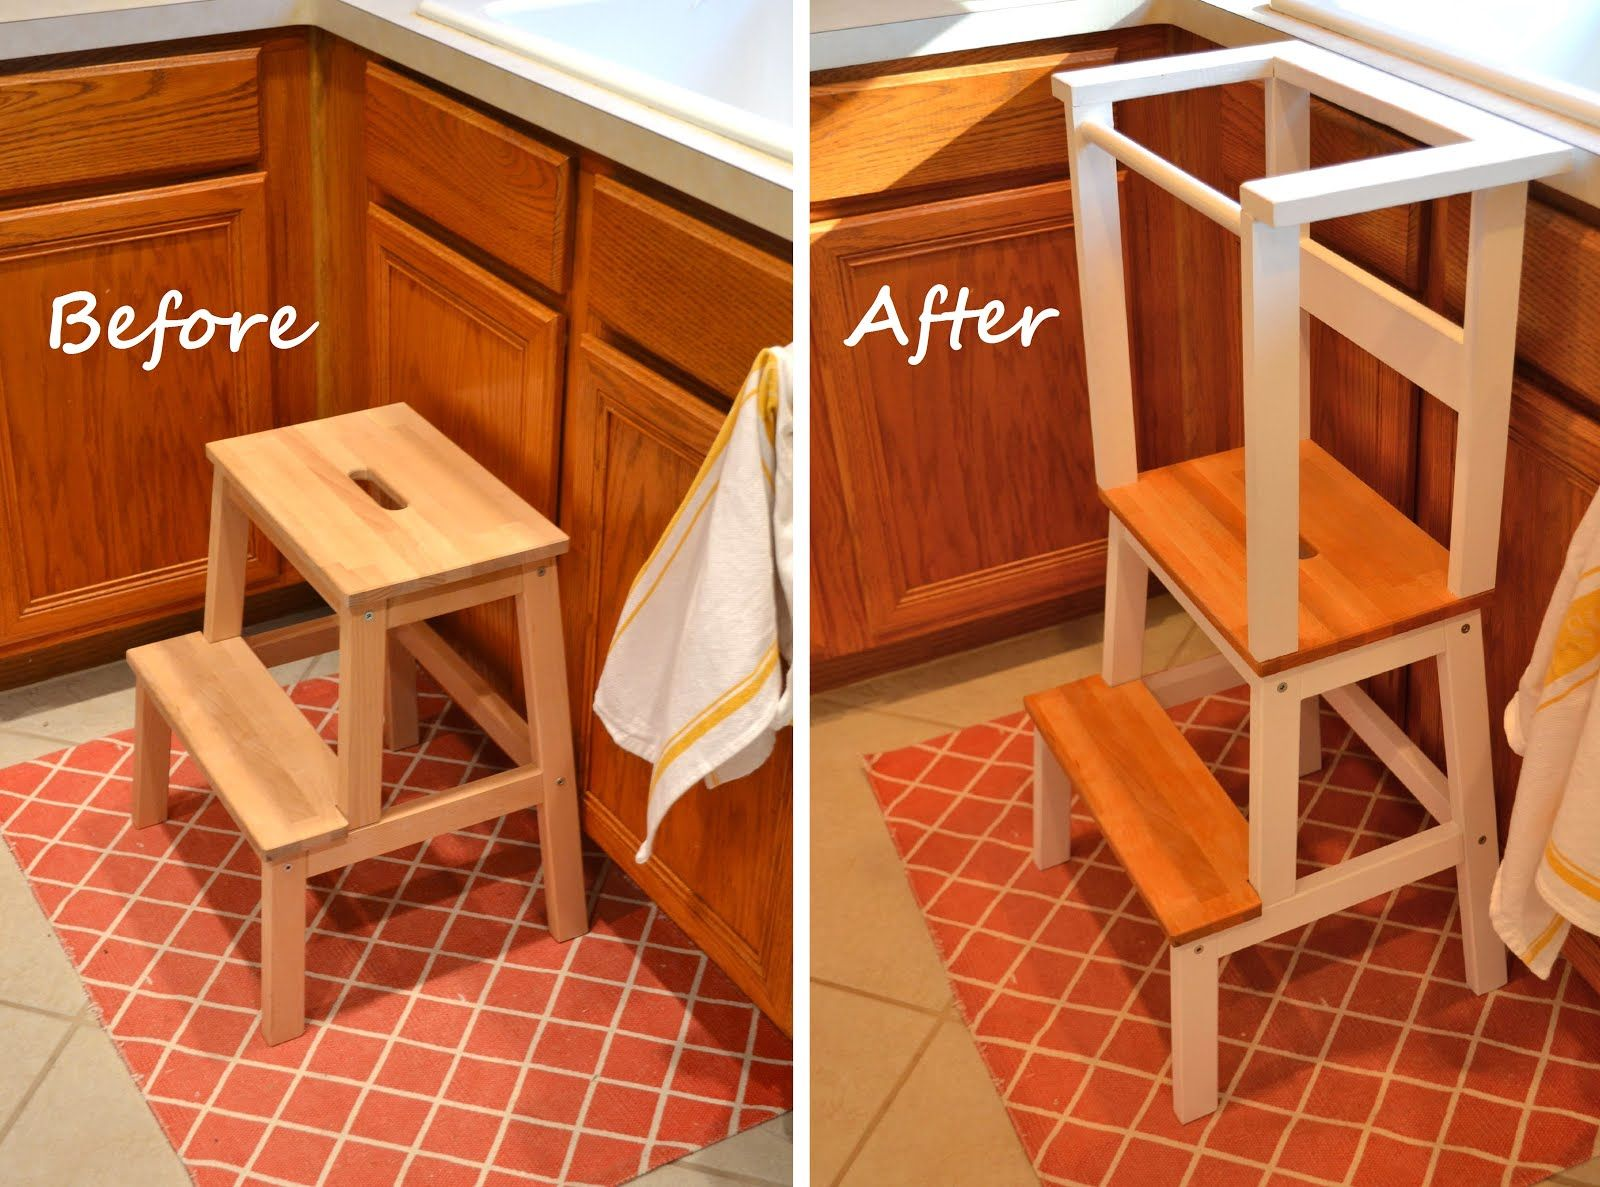 Ikea Step Stool Hack For Toddlers Toddler Kitchen Ikea Step